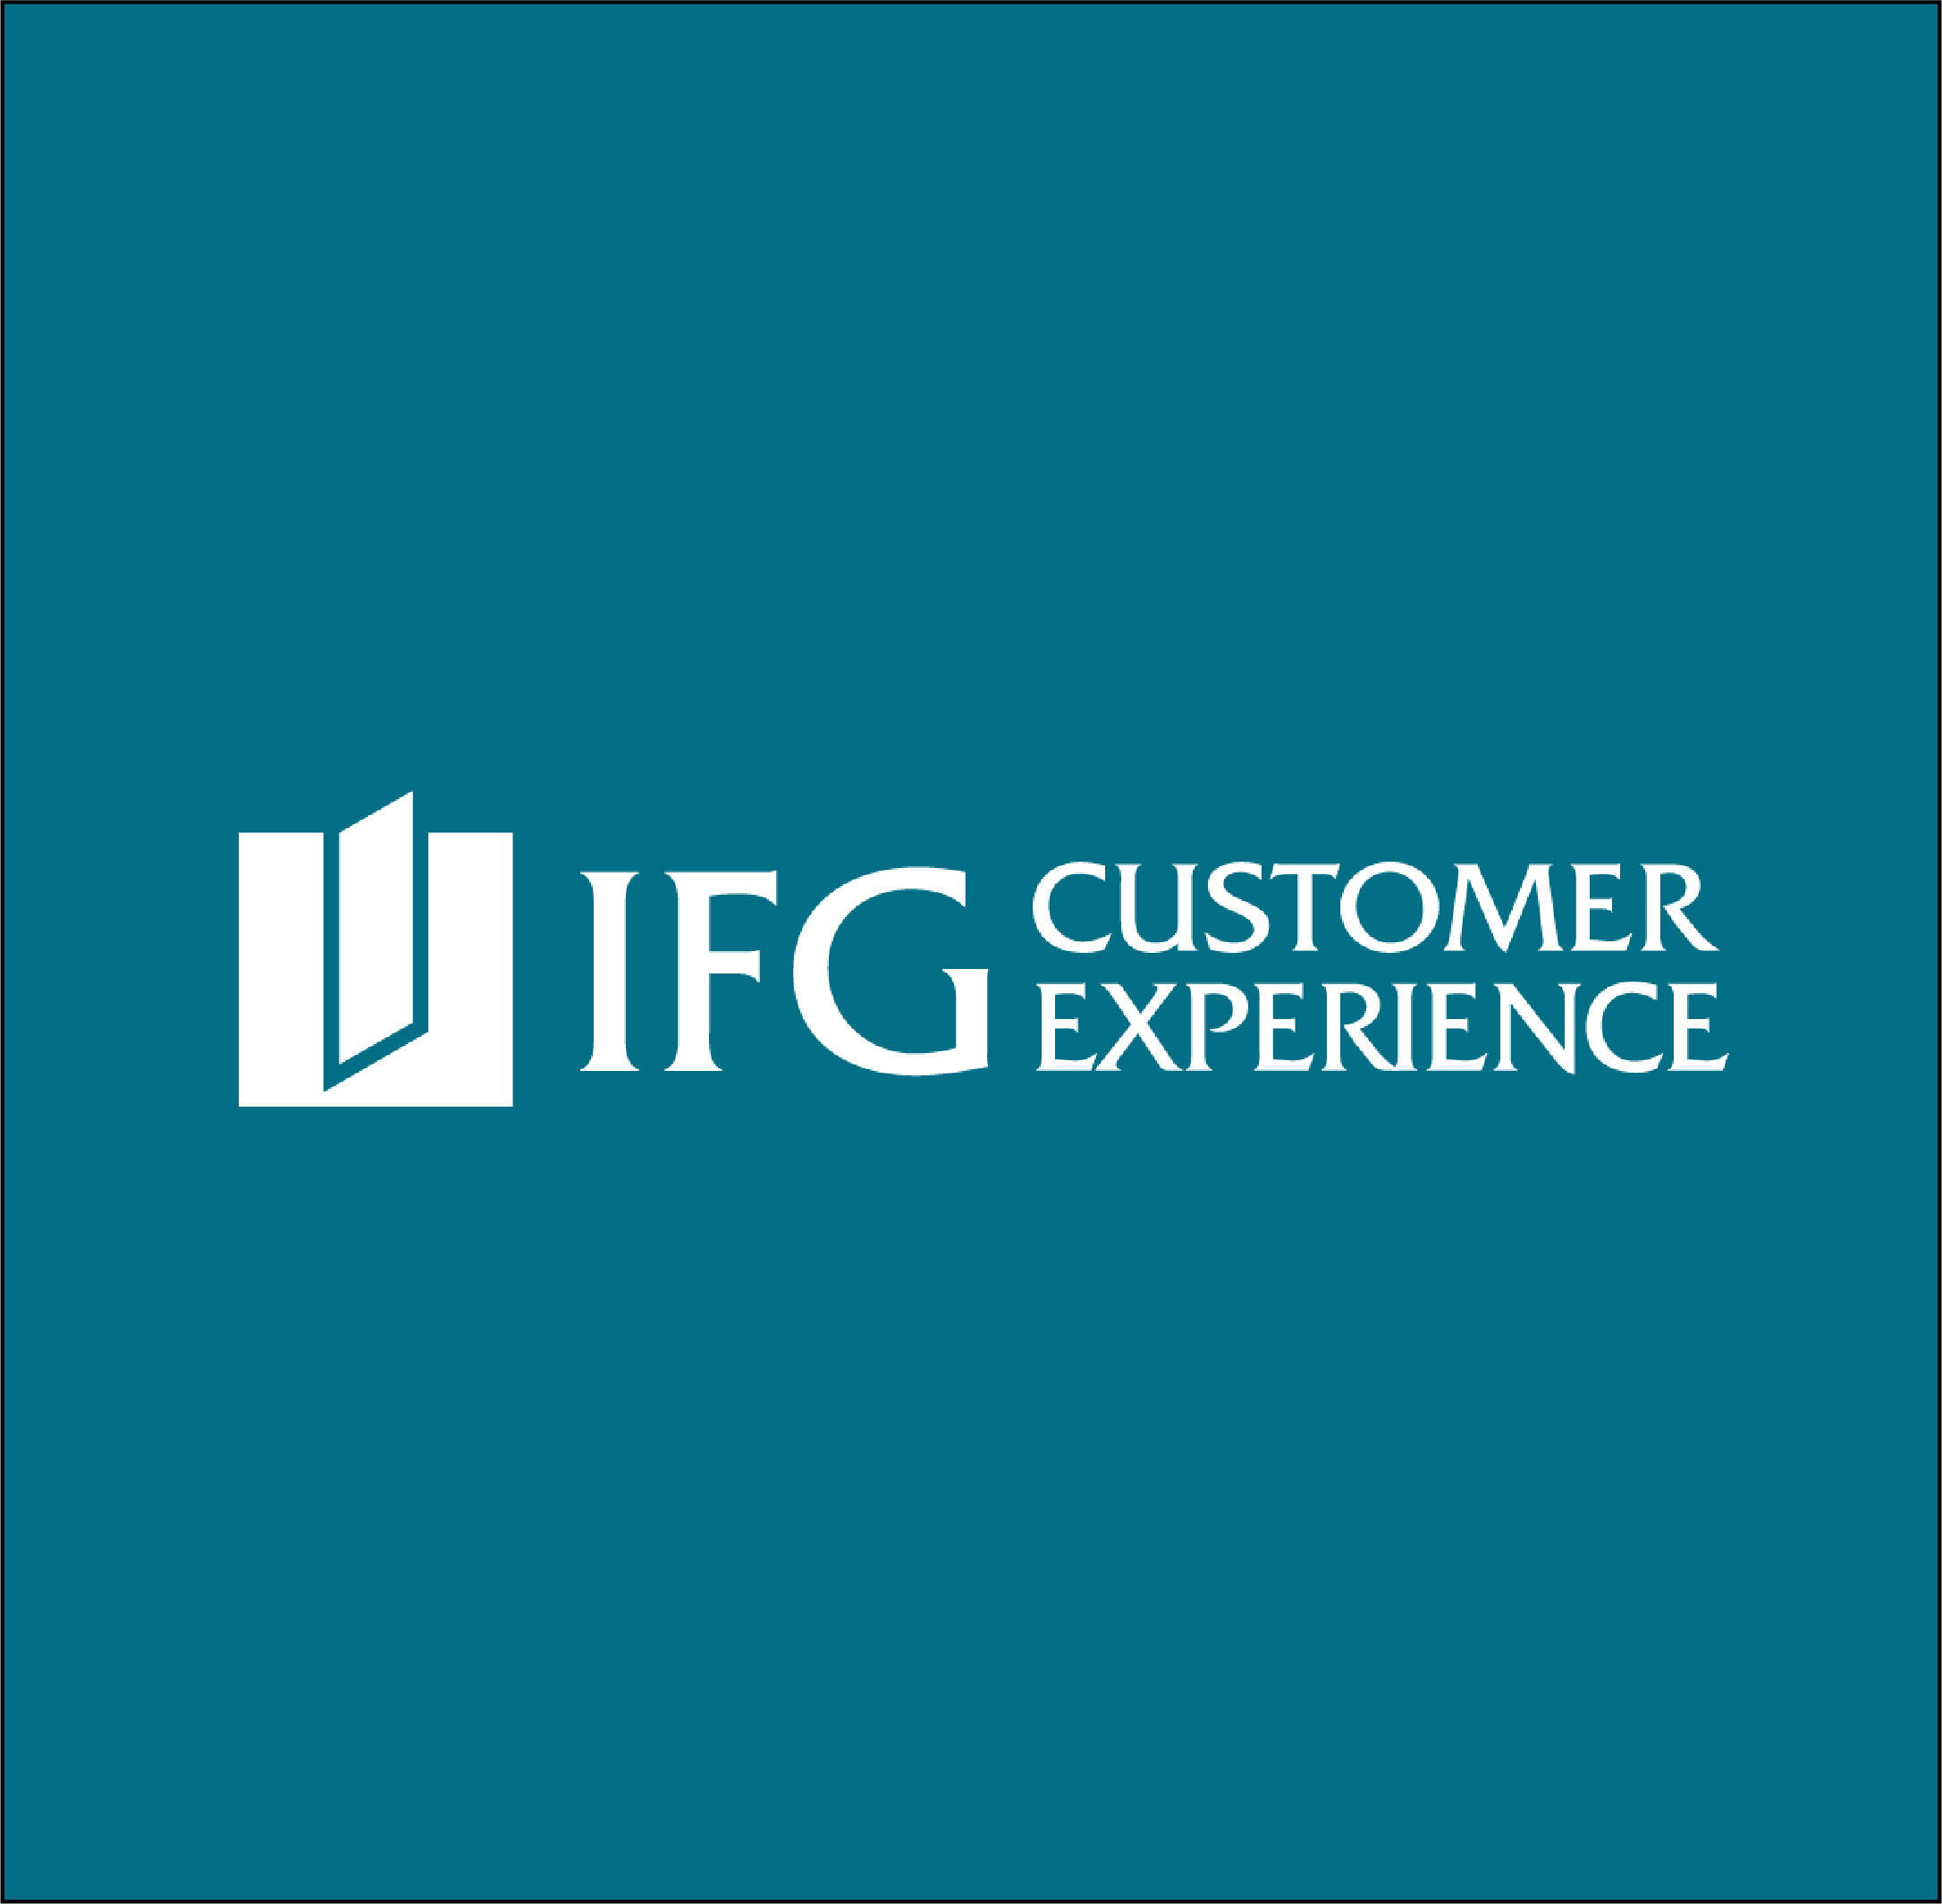 IFG CUSTOMER EXPERIENCE